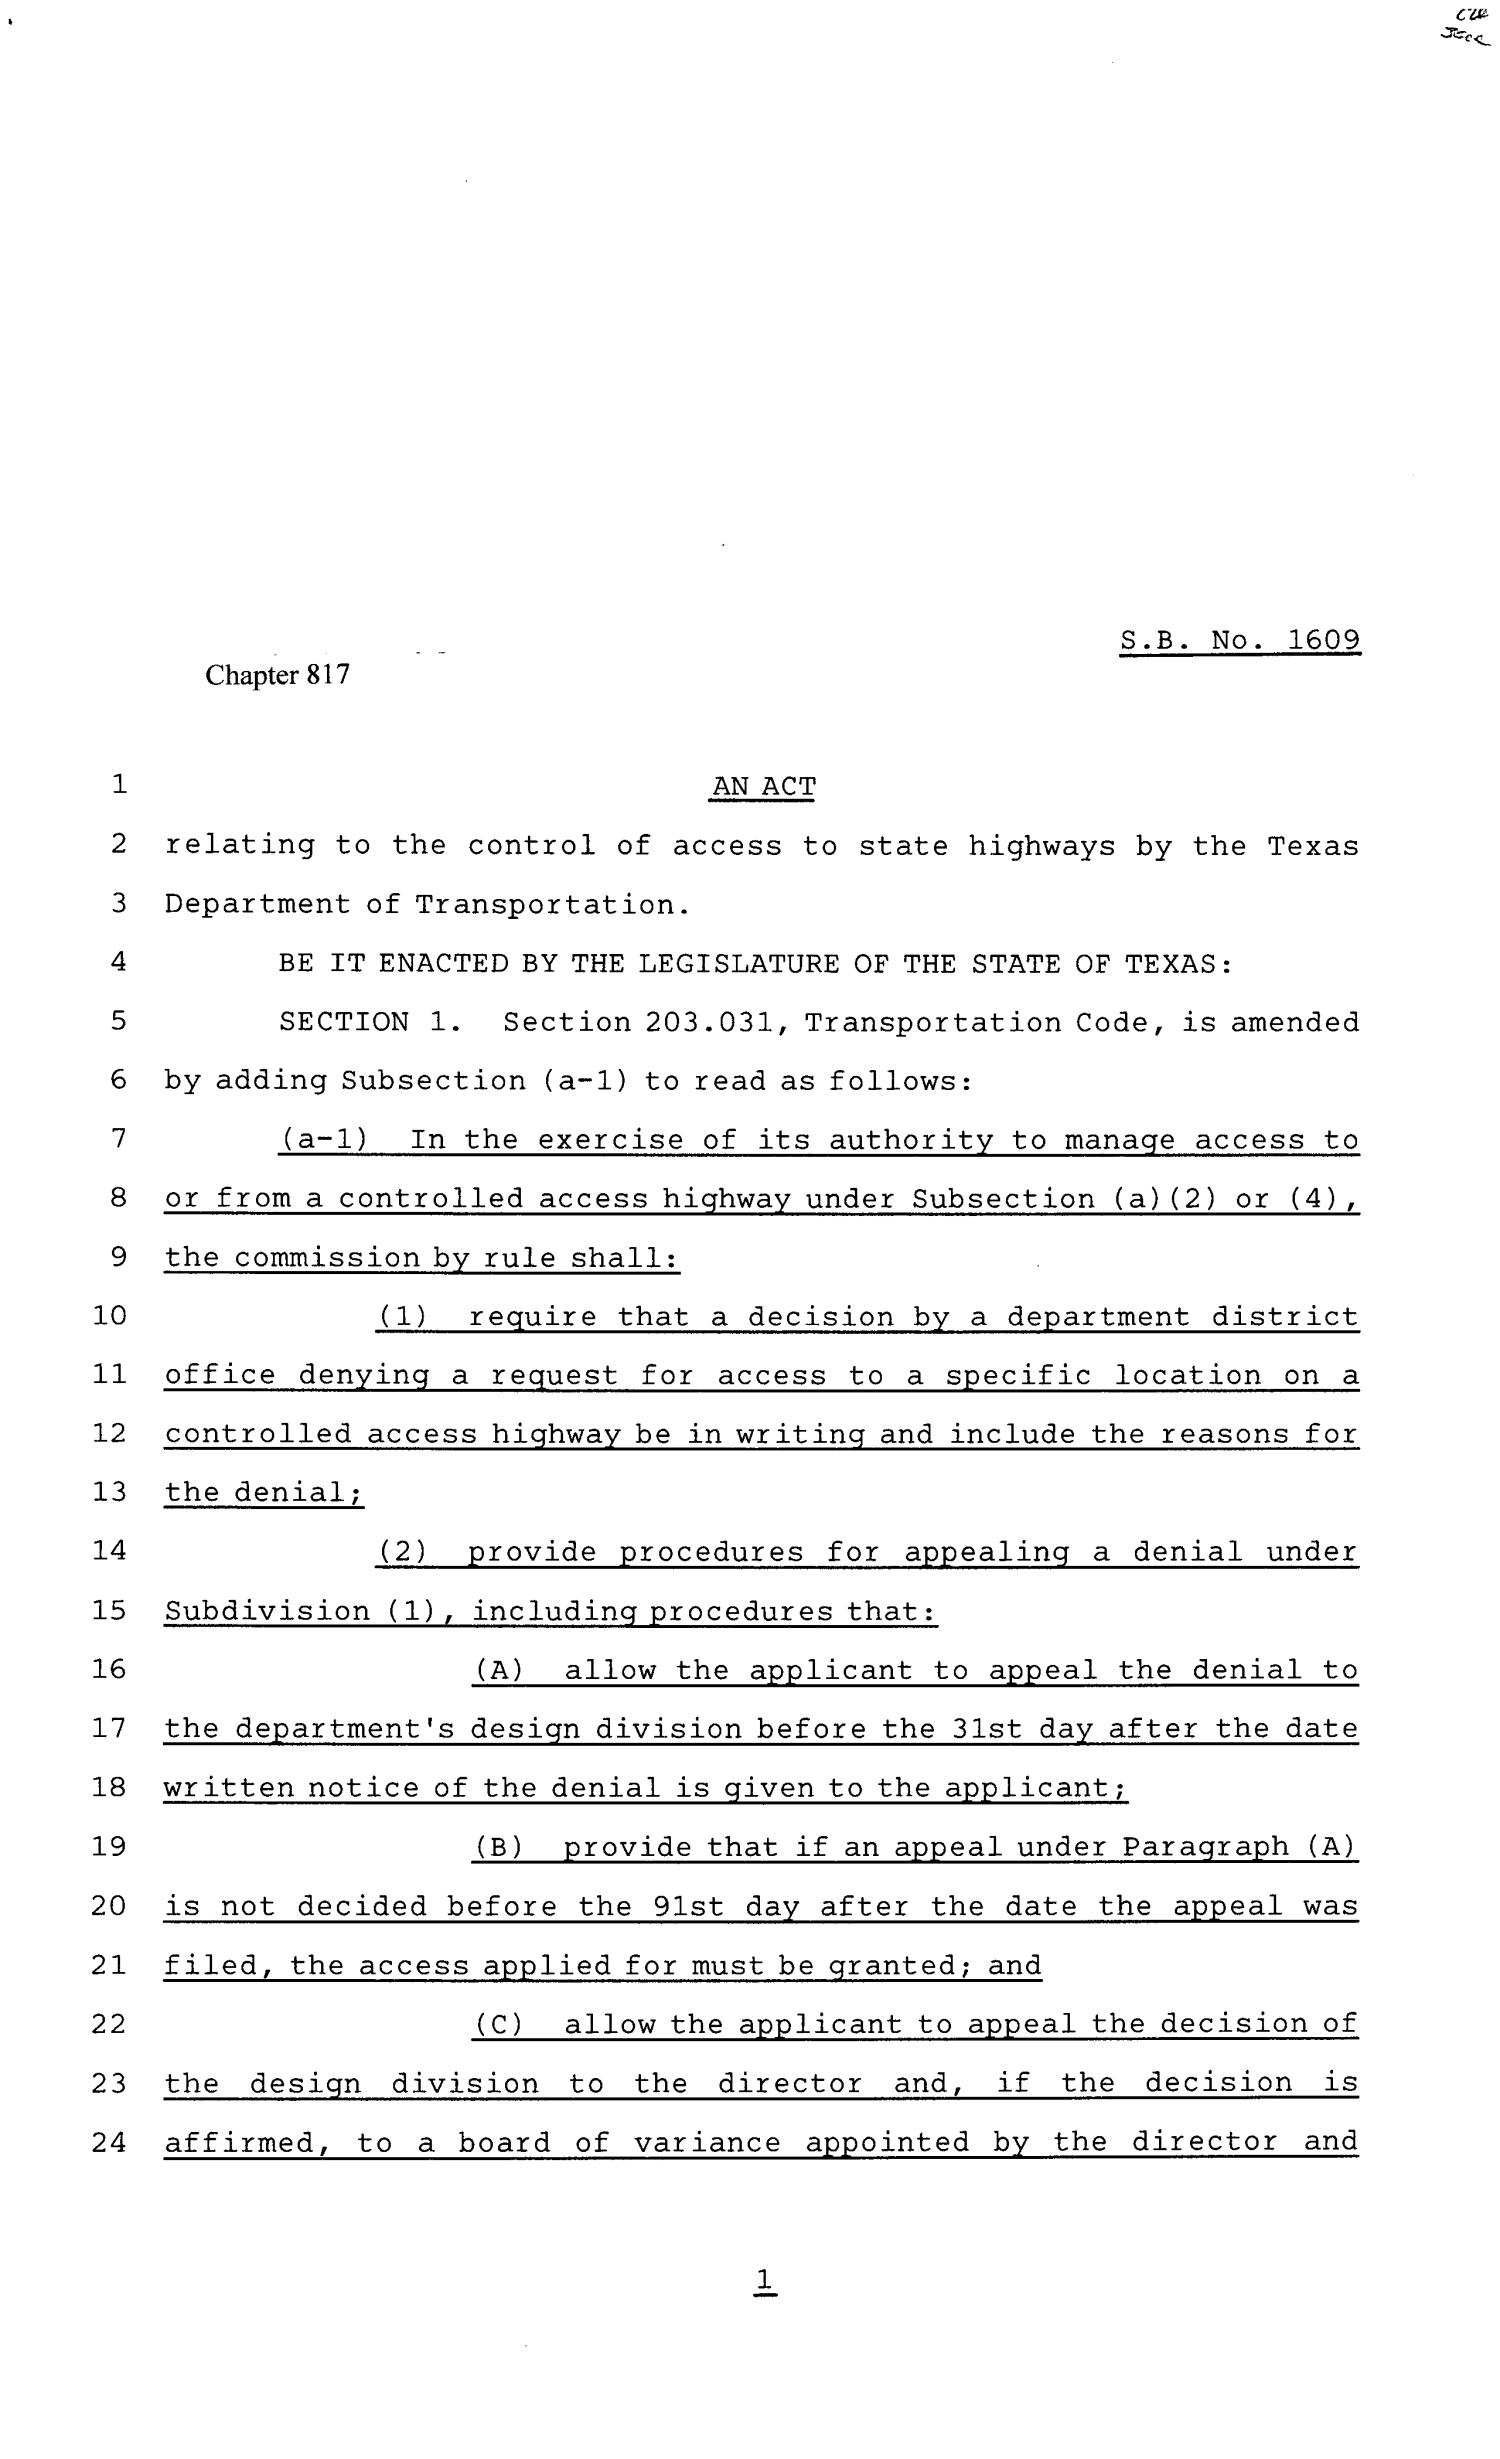 81st Texas Legislature, Senate Bill 1609, Chapter 817                                                                                                      [Sequence #]: 1 of 4